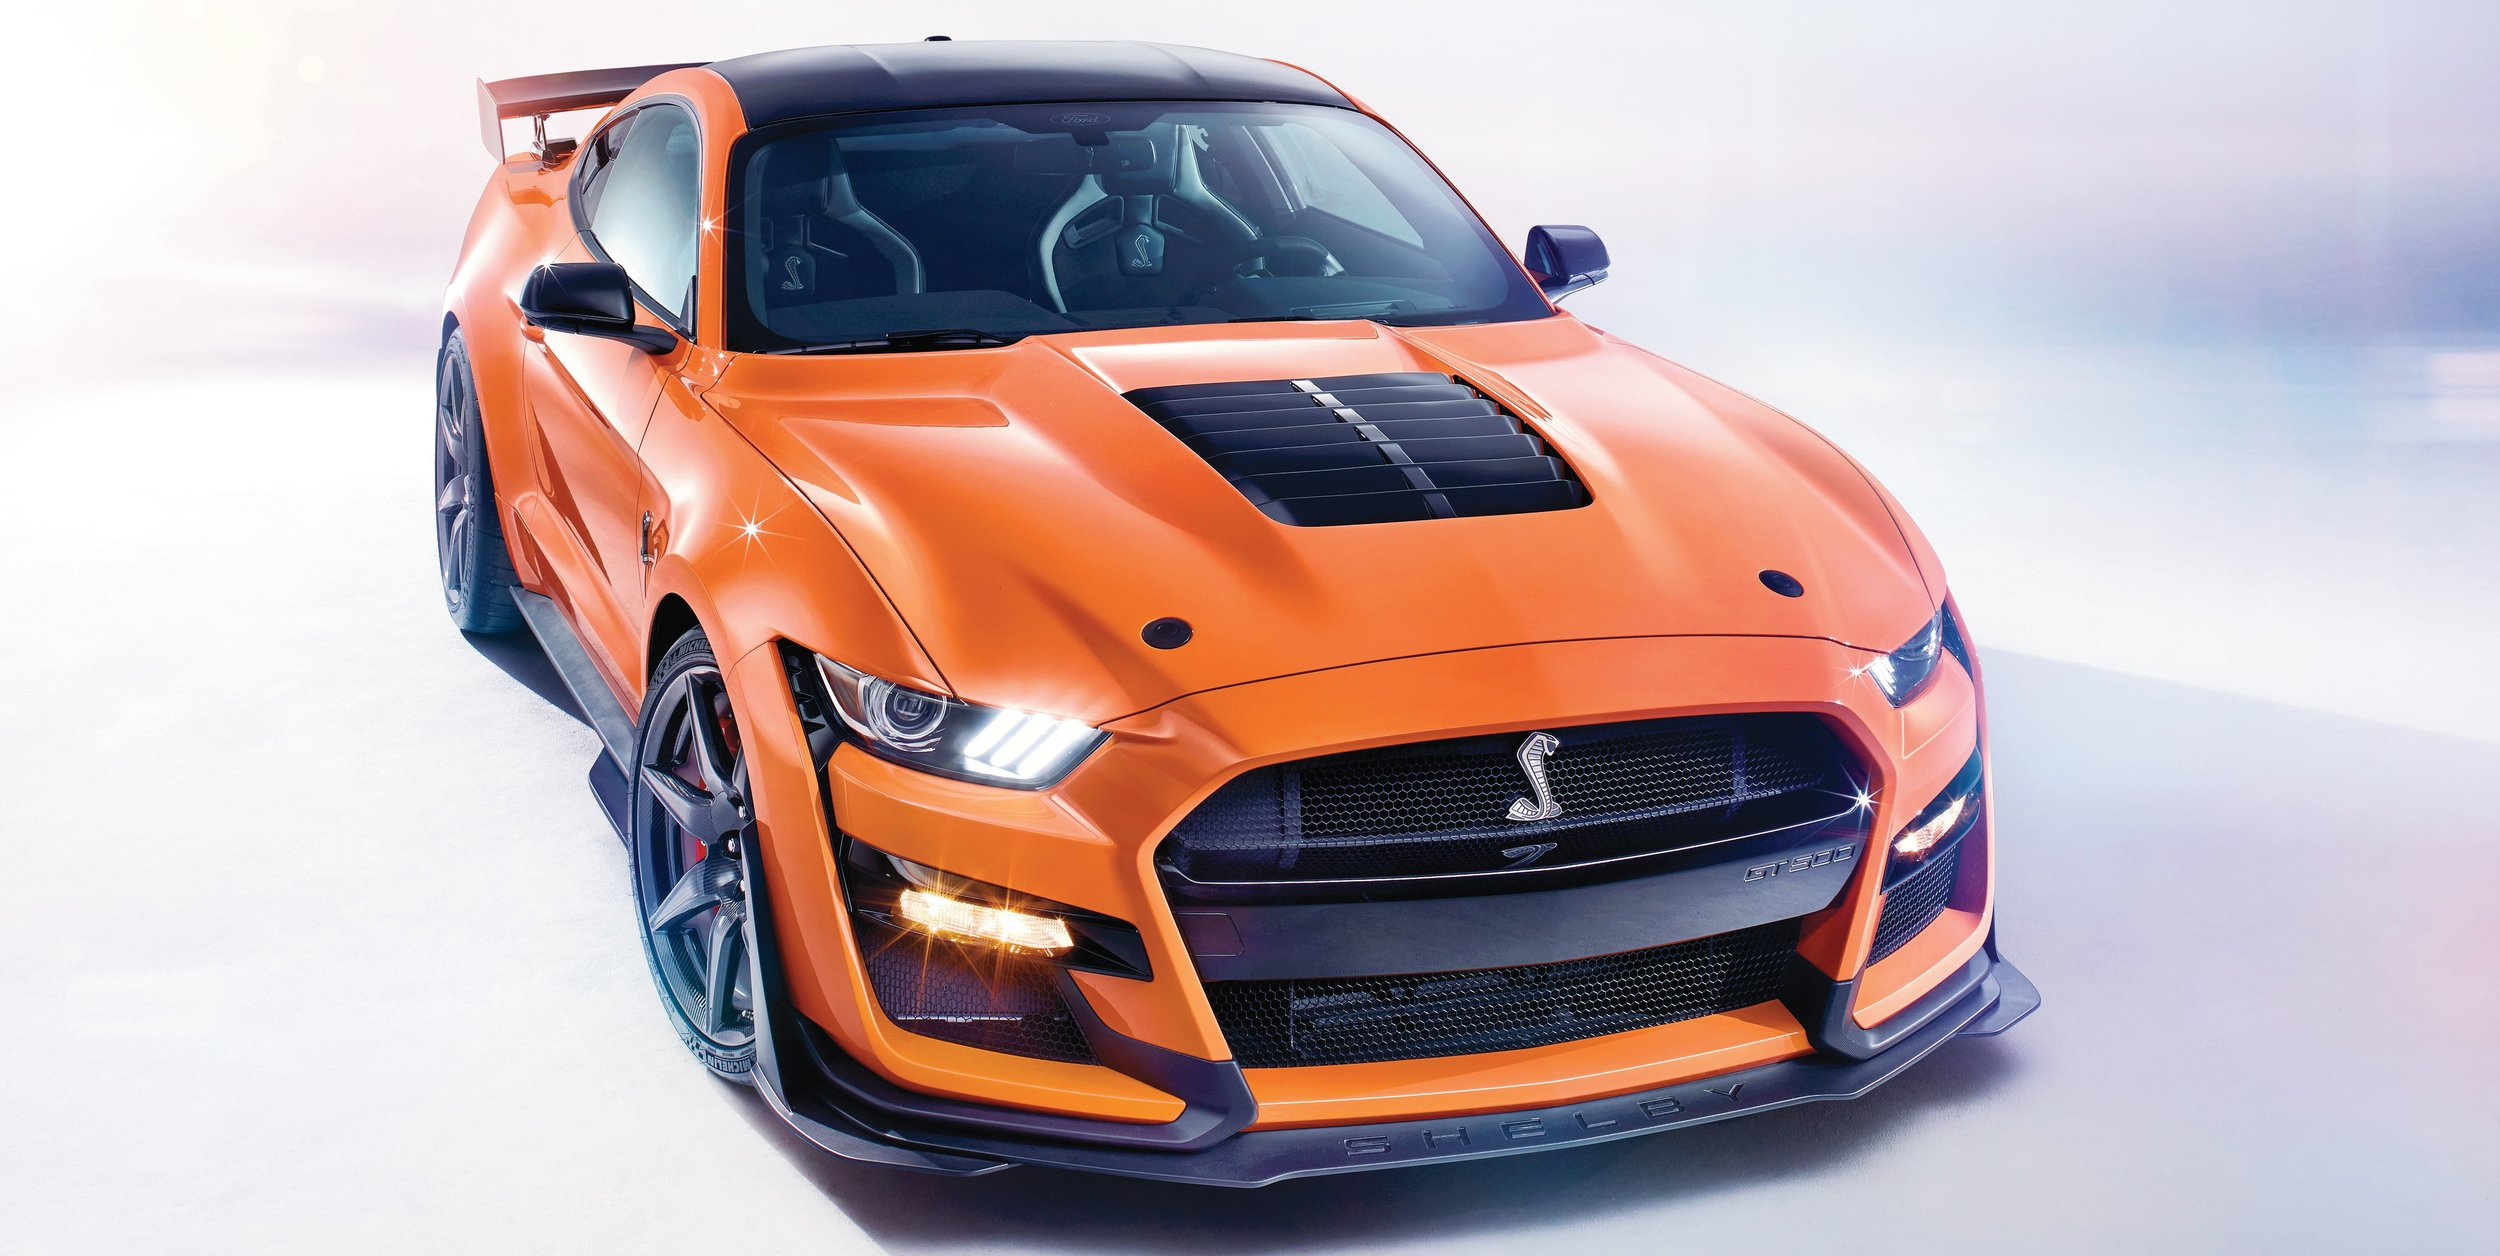 2020-ford-mustang-shelby-gt500-greg-pajo.jpg